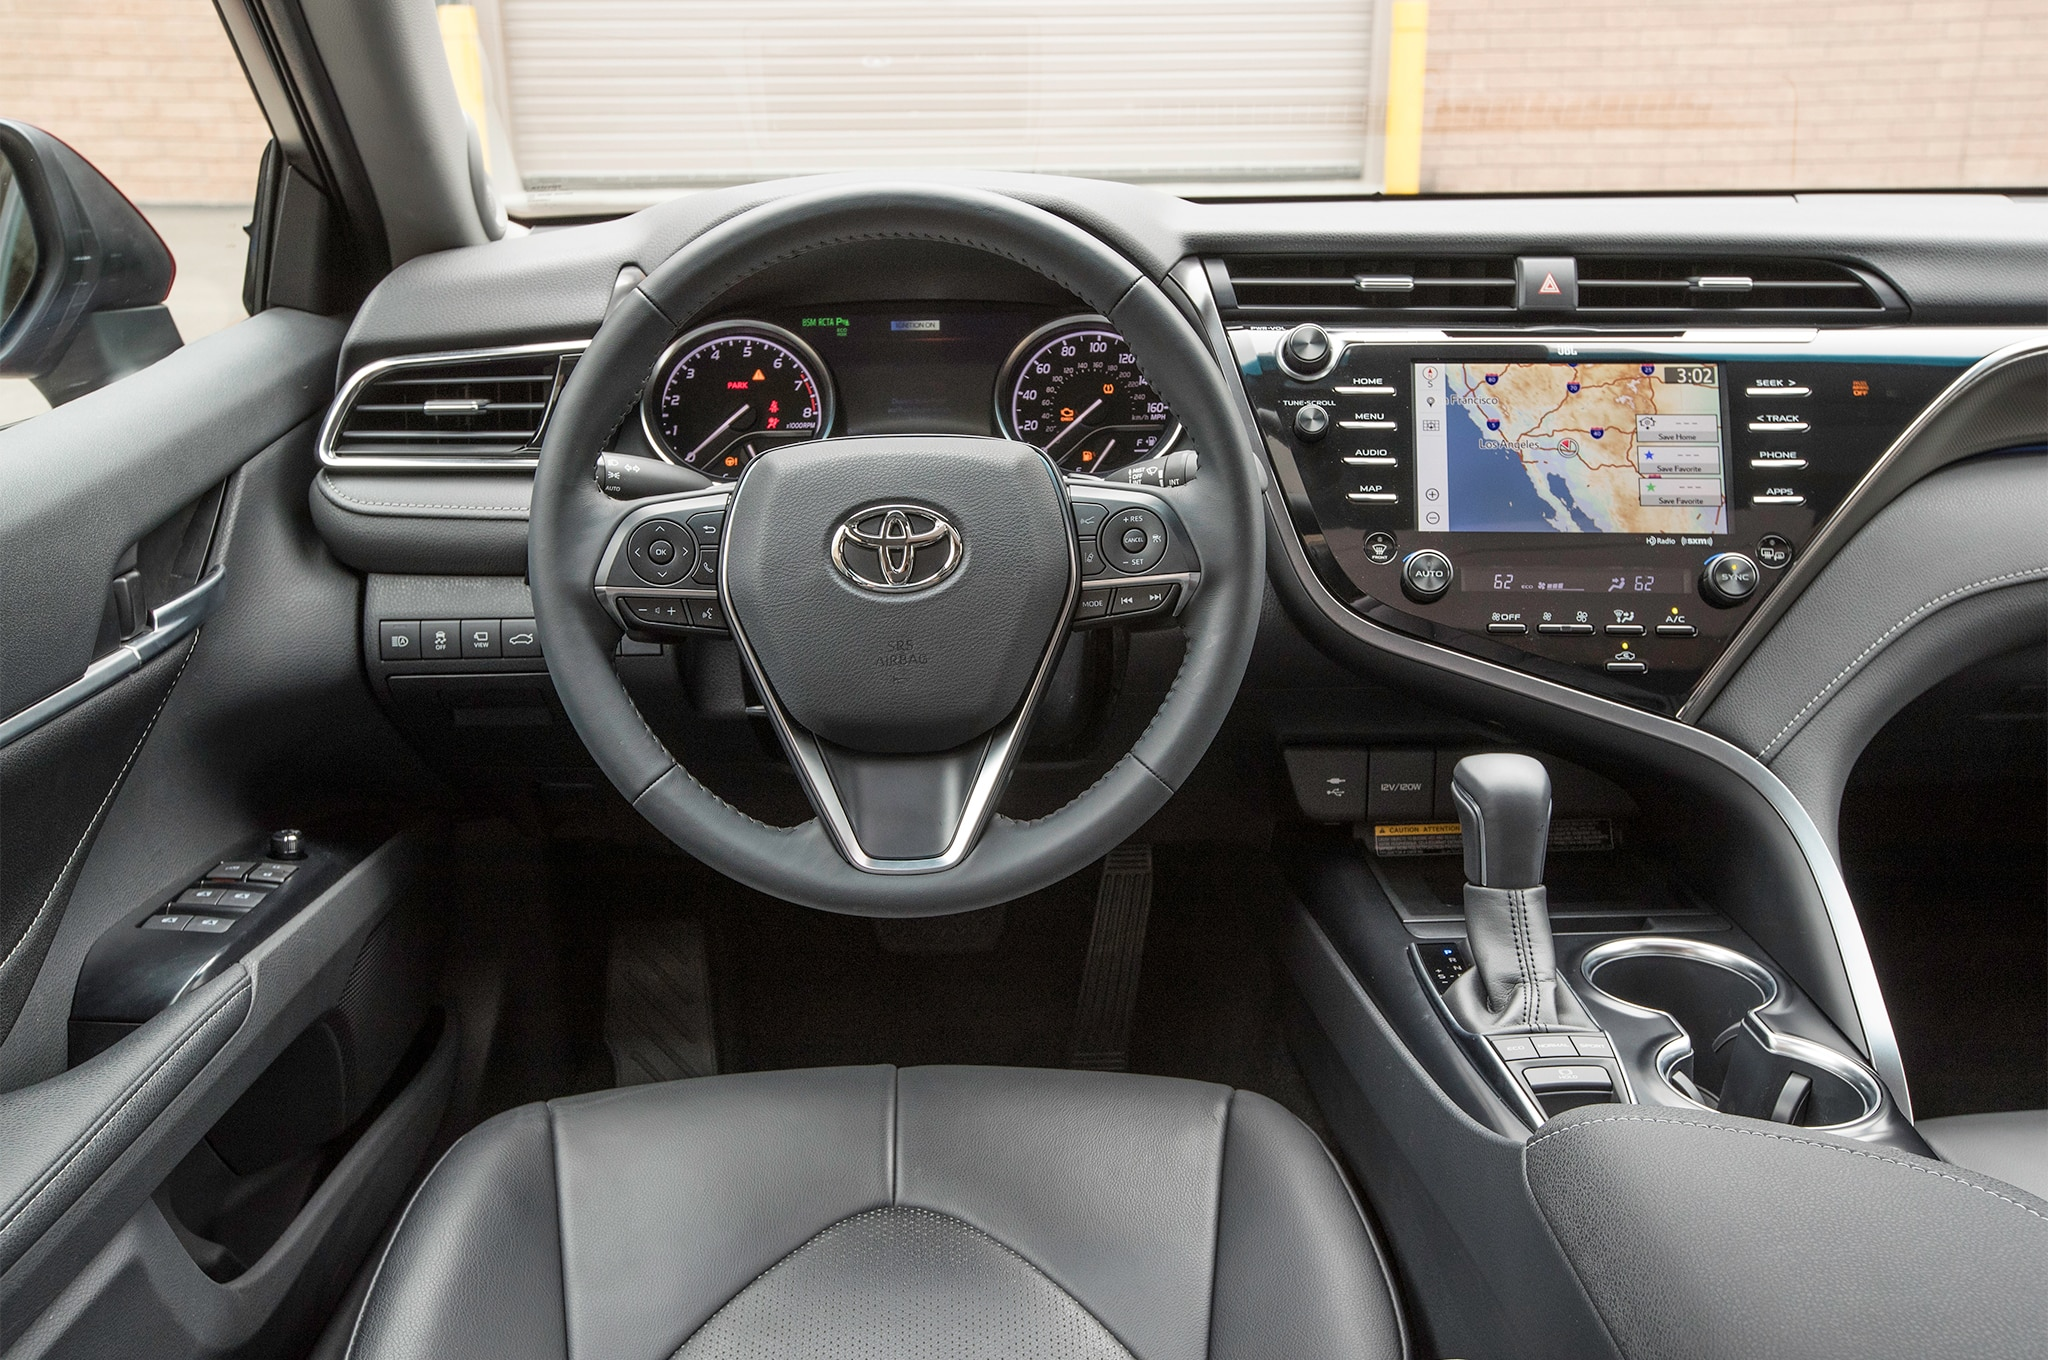 2018-Toyota-Camry-XSE-cabin-01 Stunning toyota Camry 2017 Le Vs Se Cars Trend